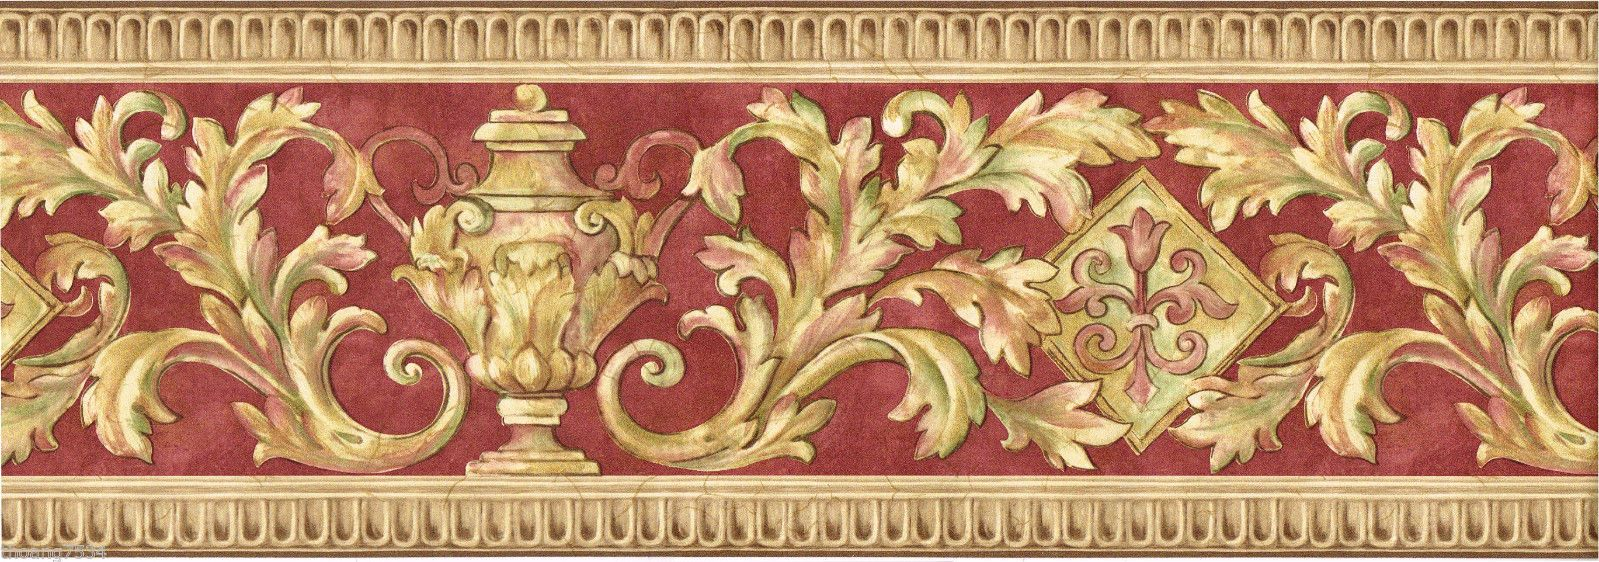 Victorian Urn Crown Molding Red Beige Brown Scroll Leaf Vine